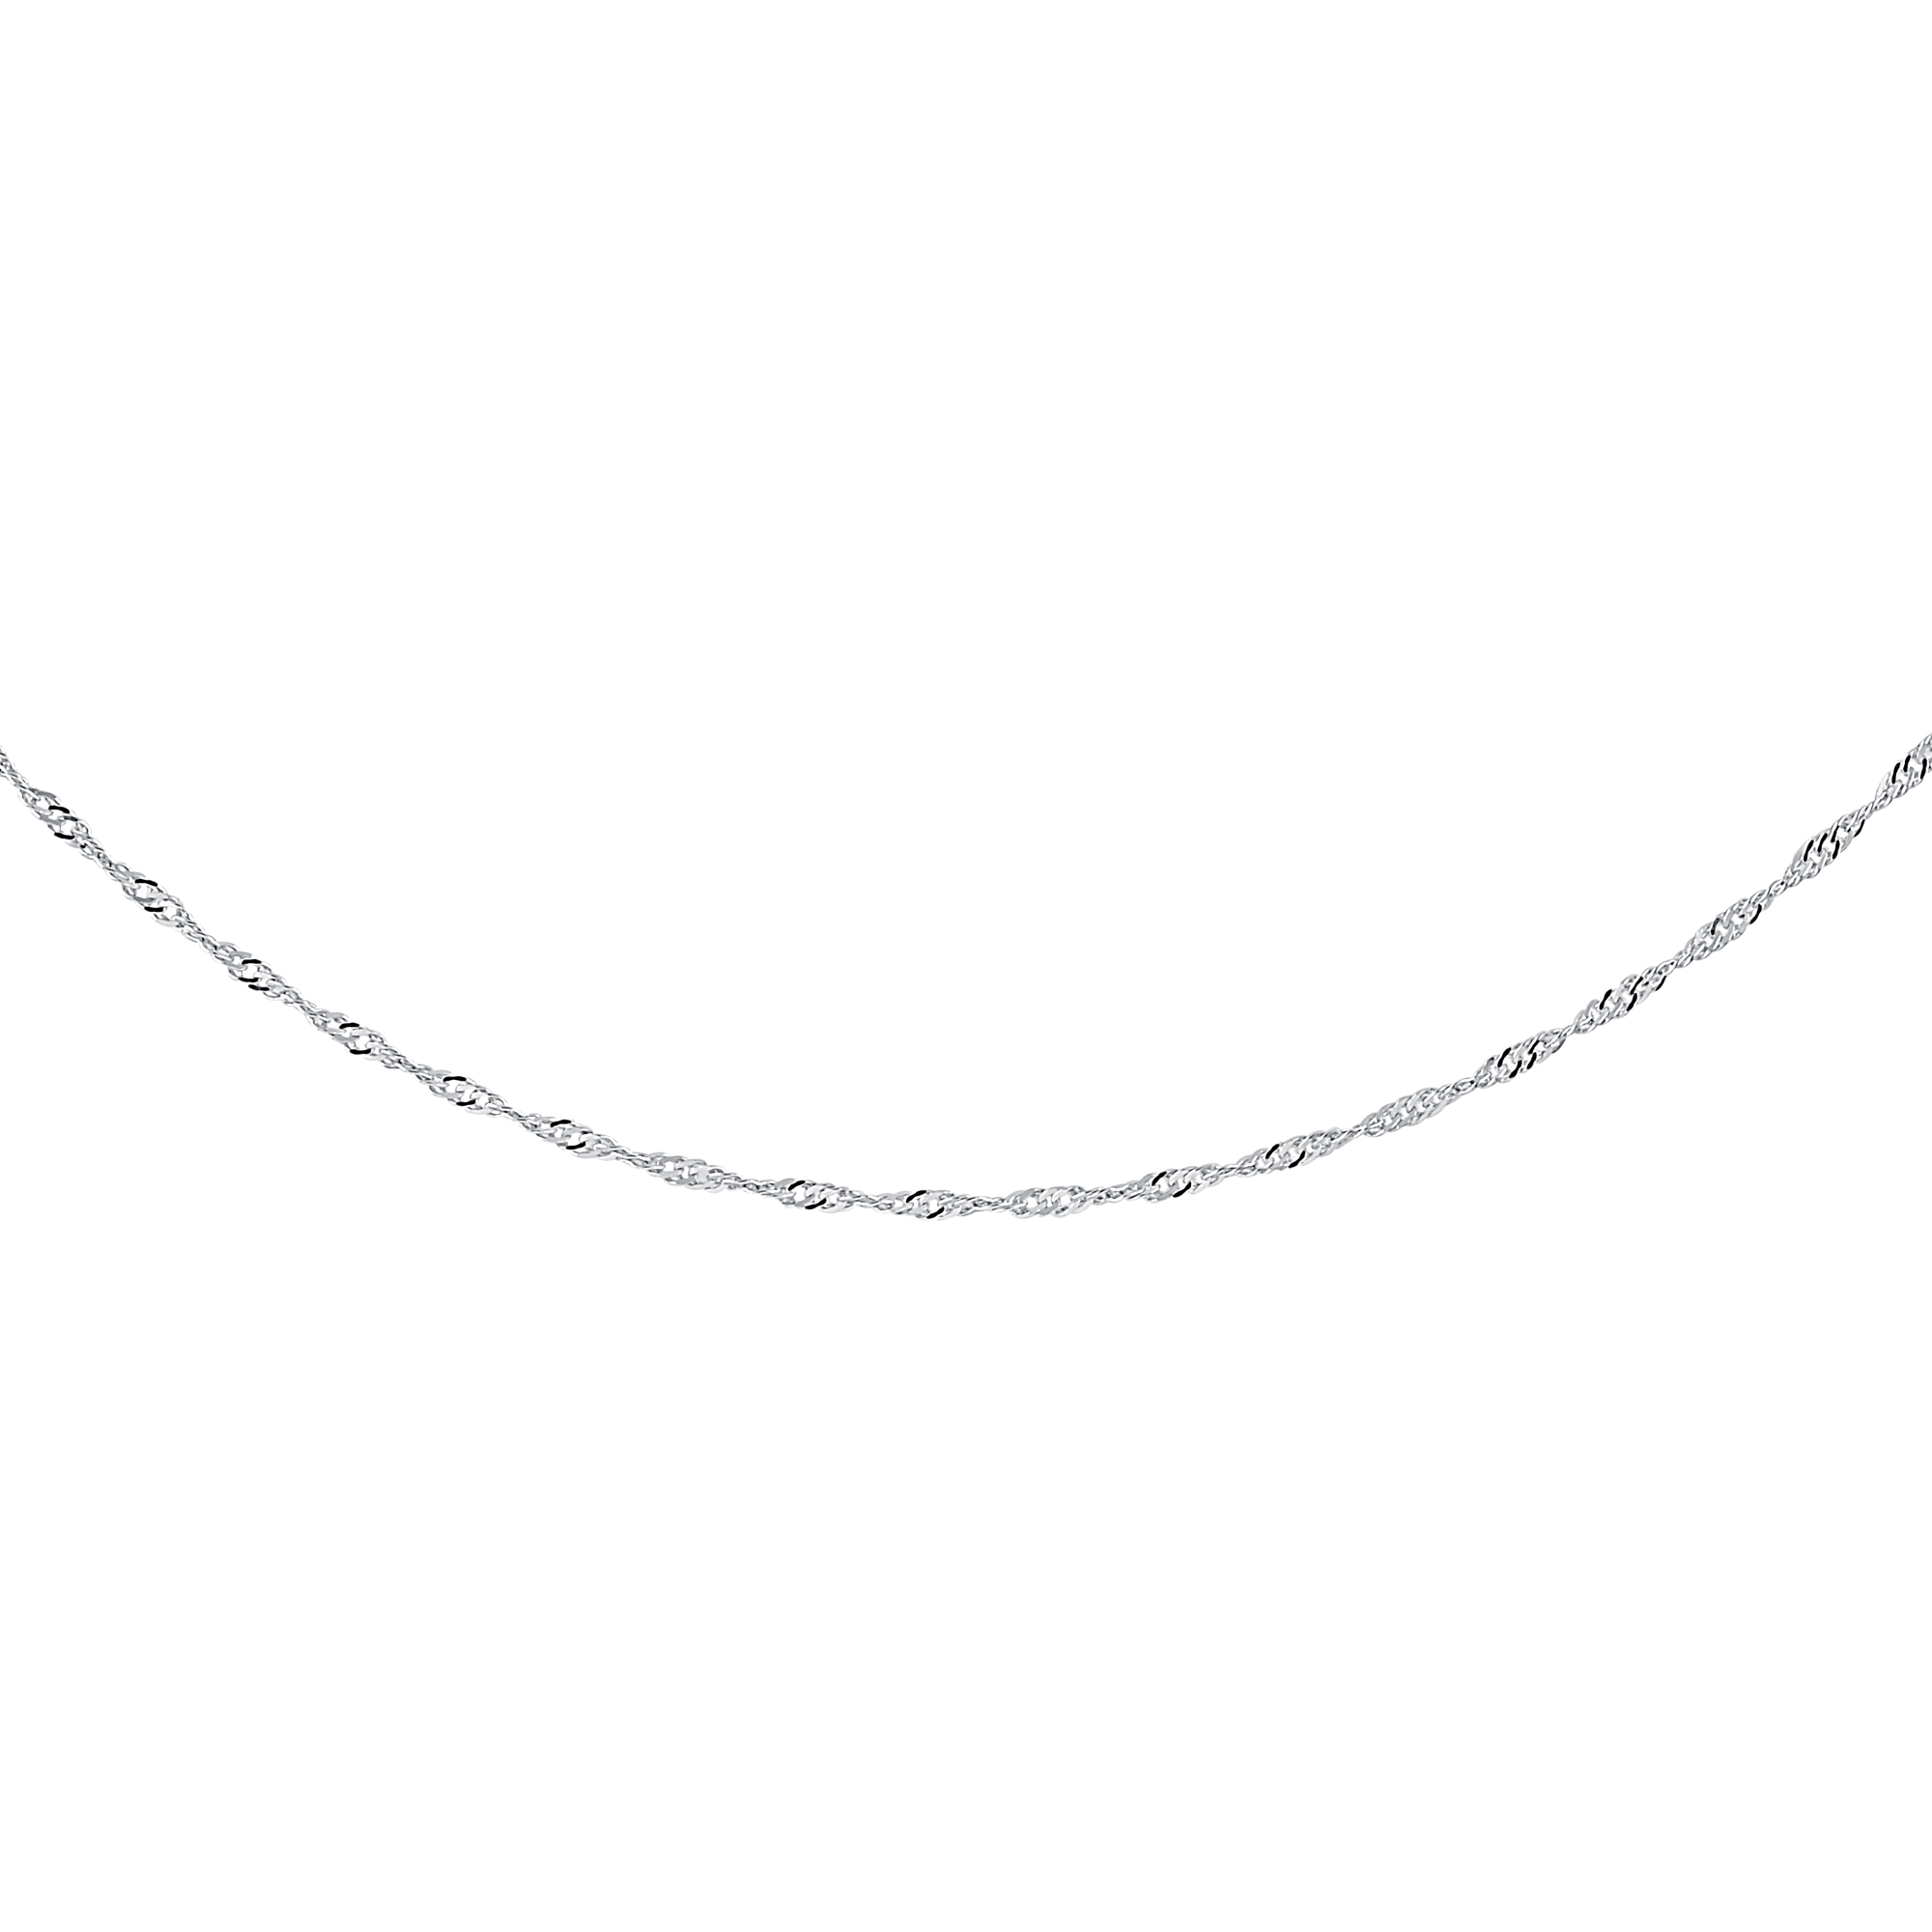 20'' Singapore Chain for women- 10K white Gold